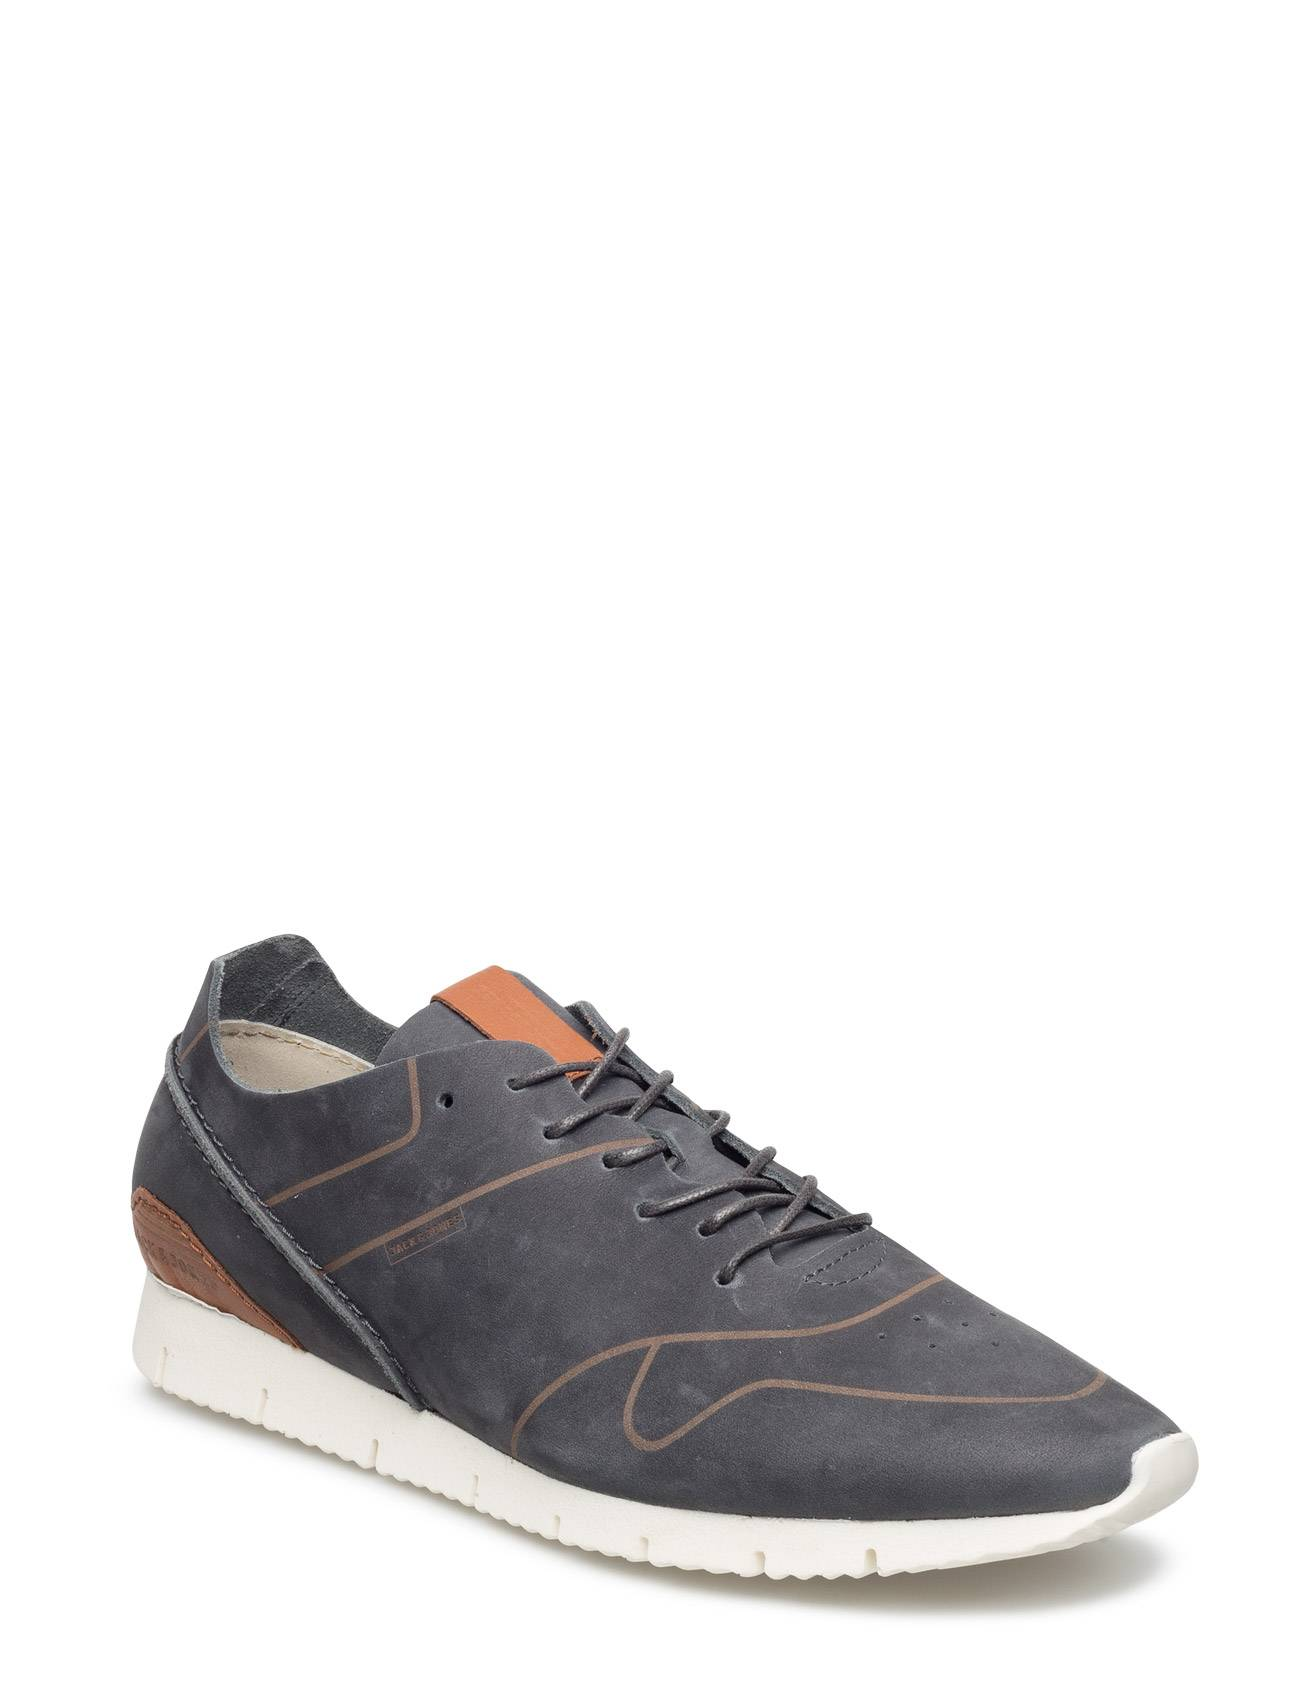 Jack & Jones Jjrobson Leather Sneaker Anthracite